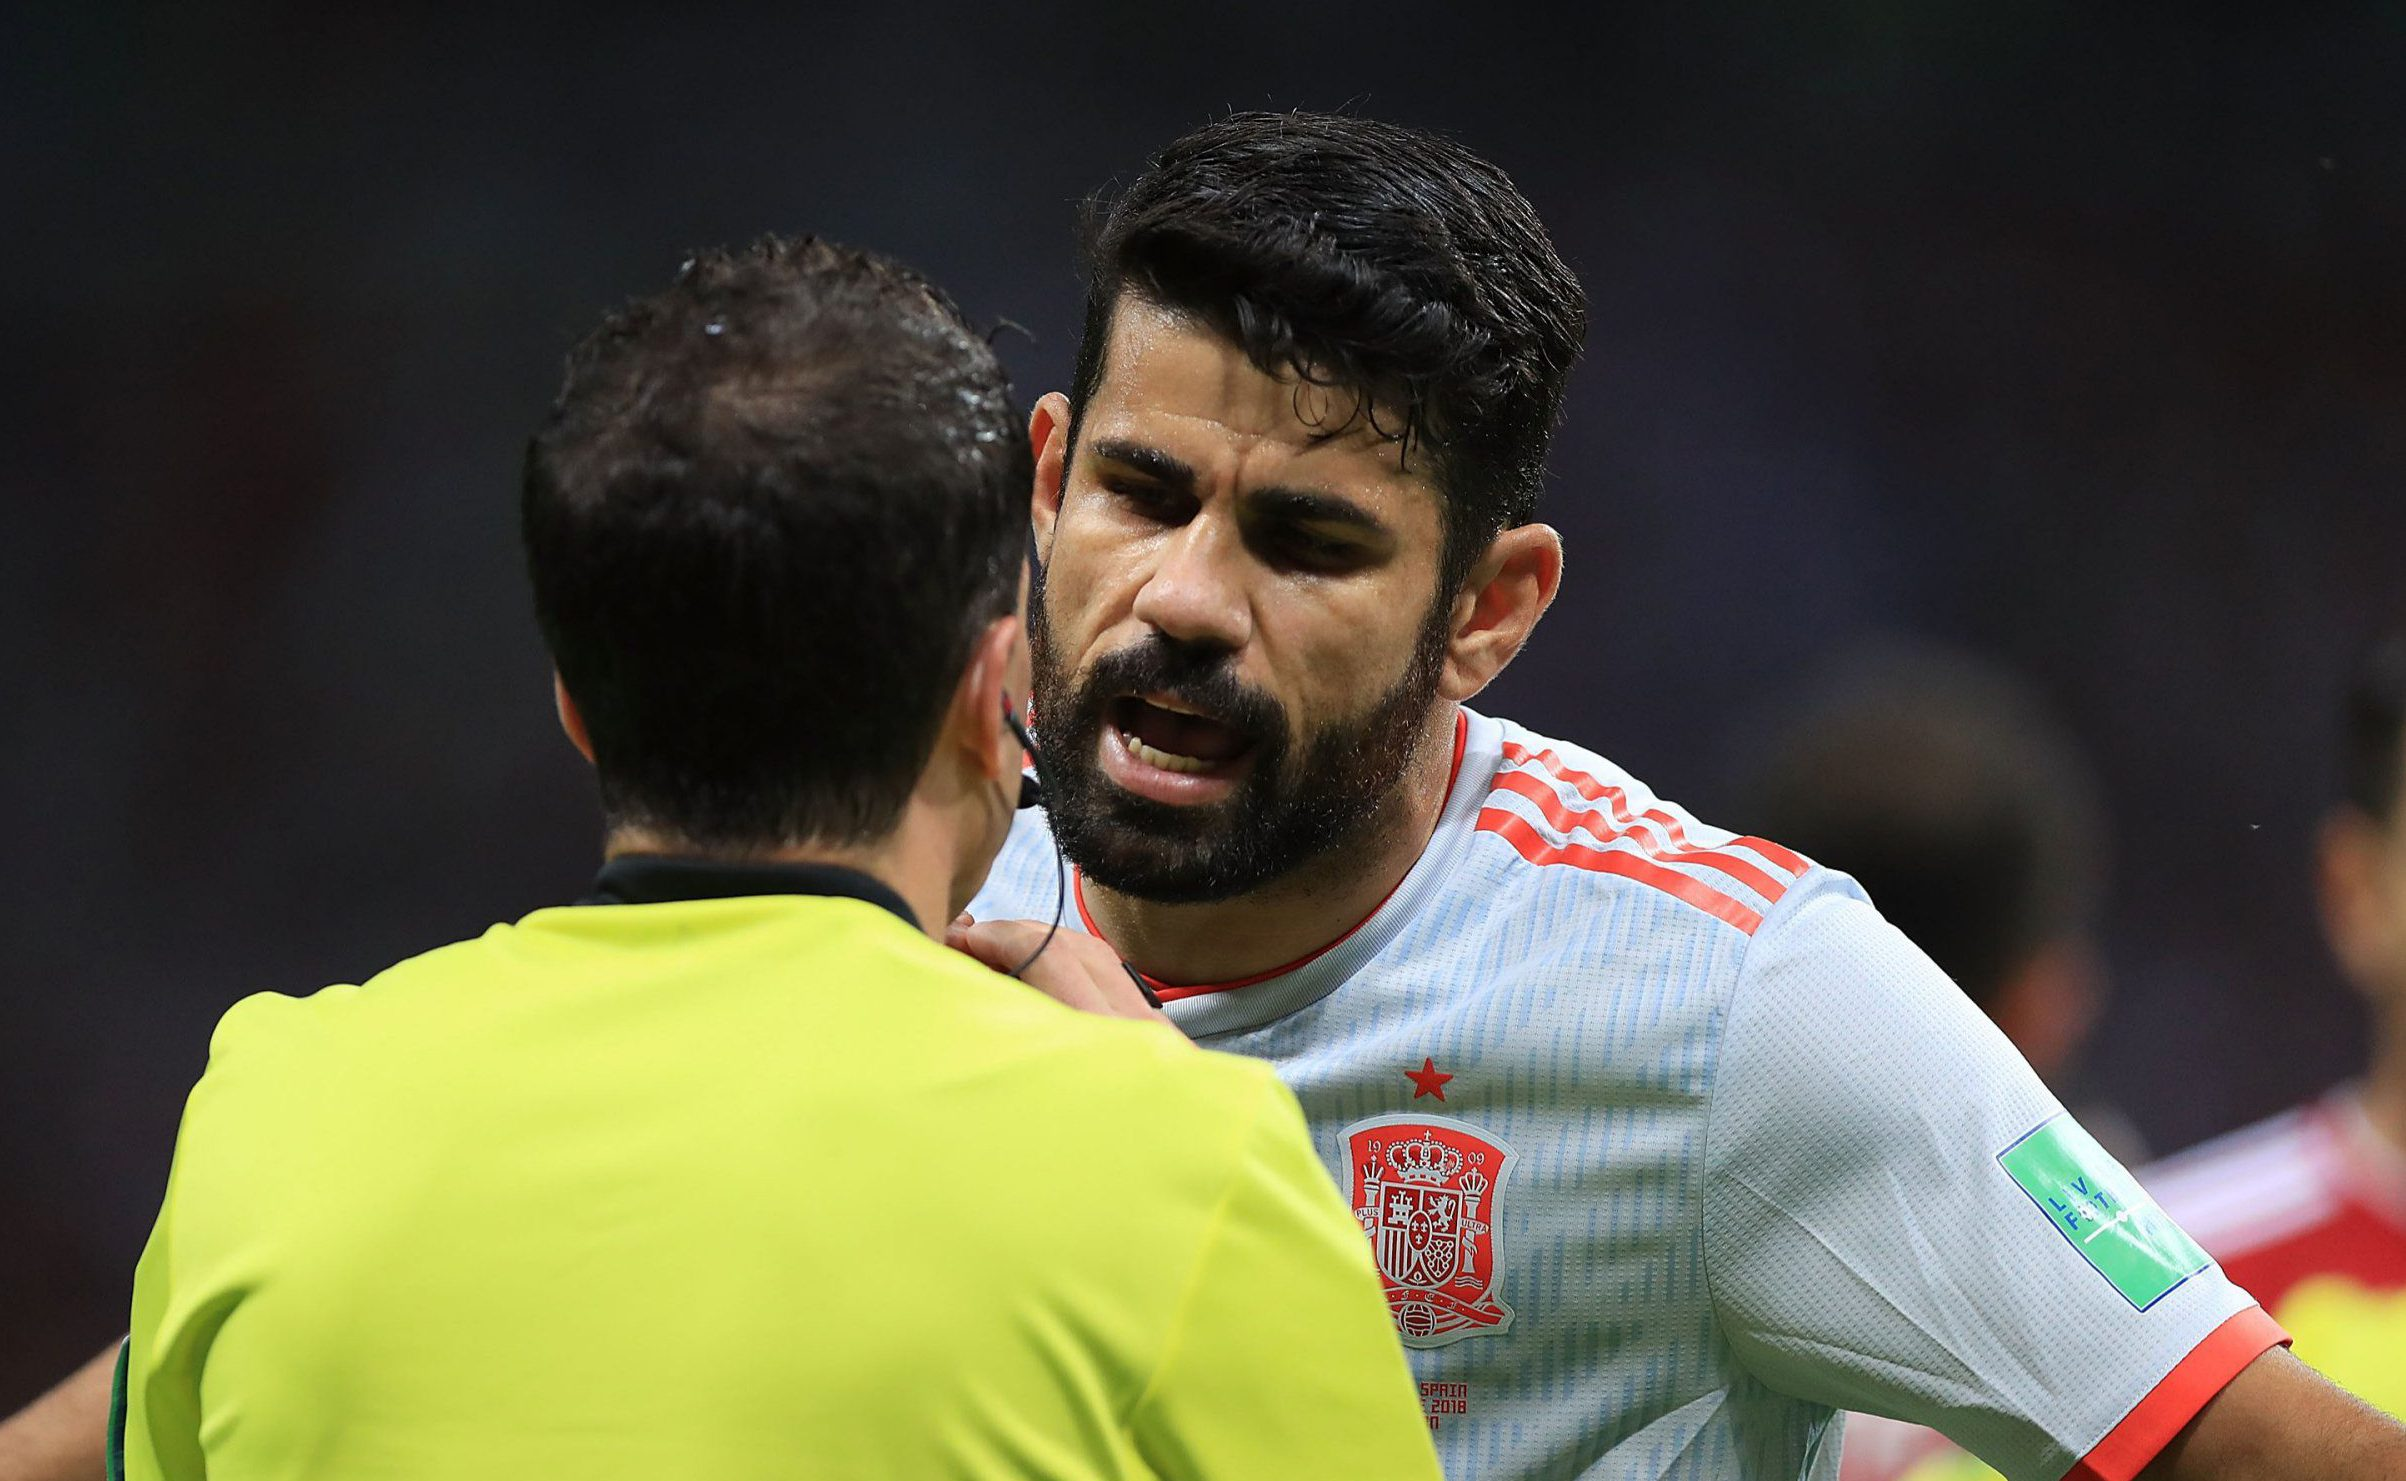 KAZAN, RUSSIA - JUNE 20: Diego Costa of Spain speeks with referee during the 2018 FIFA World Cup Russia group B match between Iran and Spain at Kazan Arena on June 20, 2018 in Kazan, Russia. (Photo by Amin Mohammad Jamali/Getty Images)